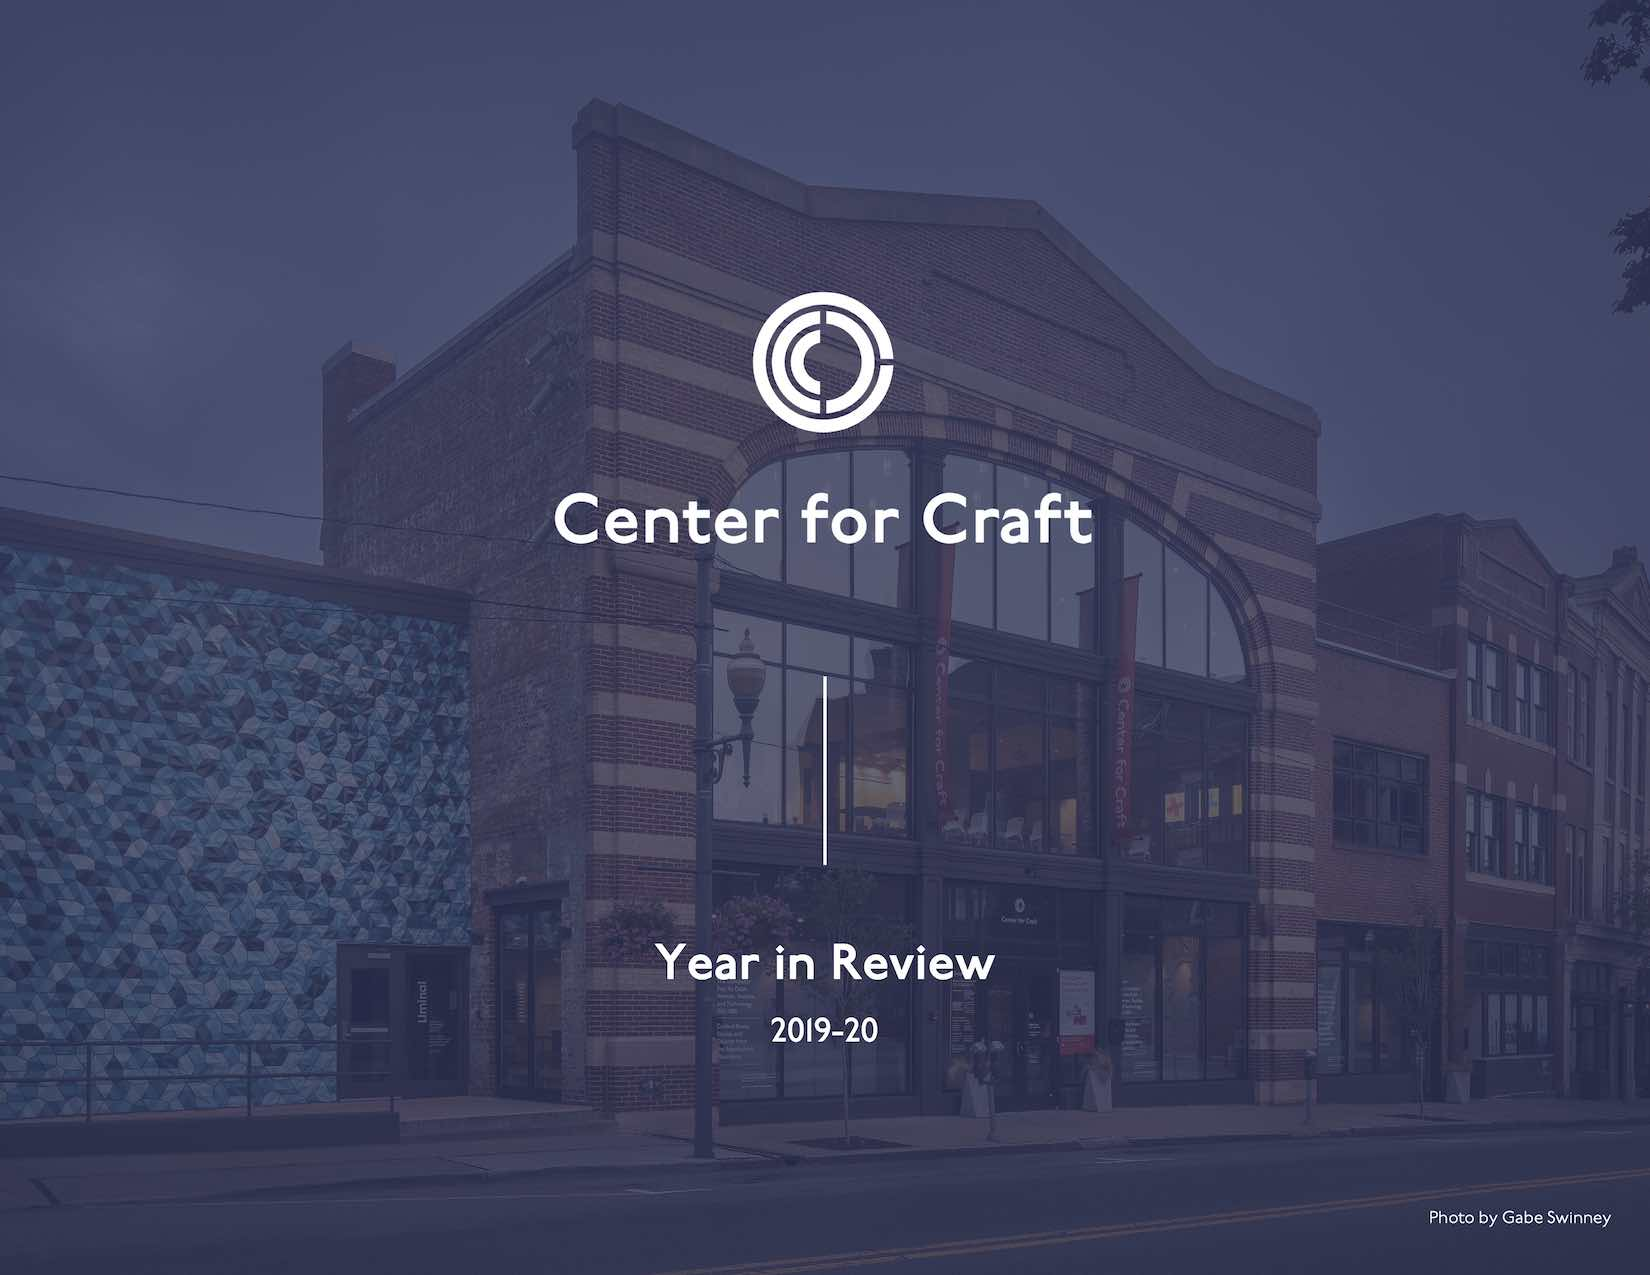 Center for Craft building with blue overlay and Center for Craft logo.